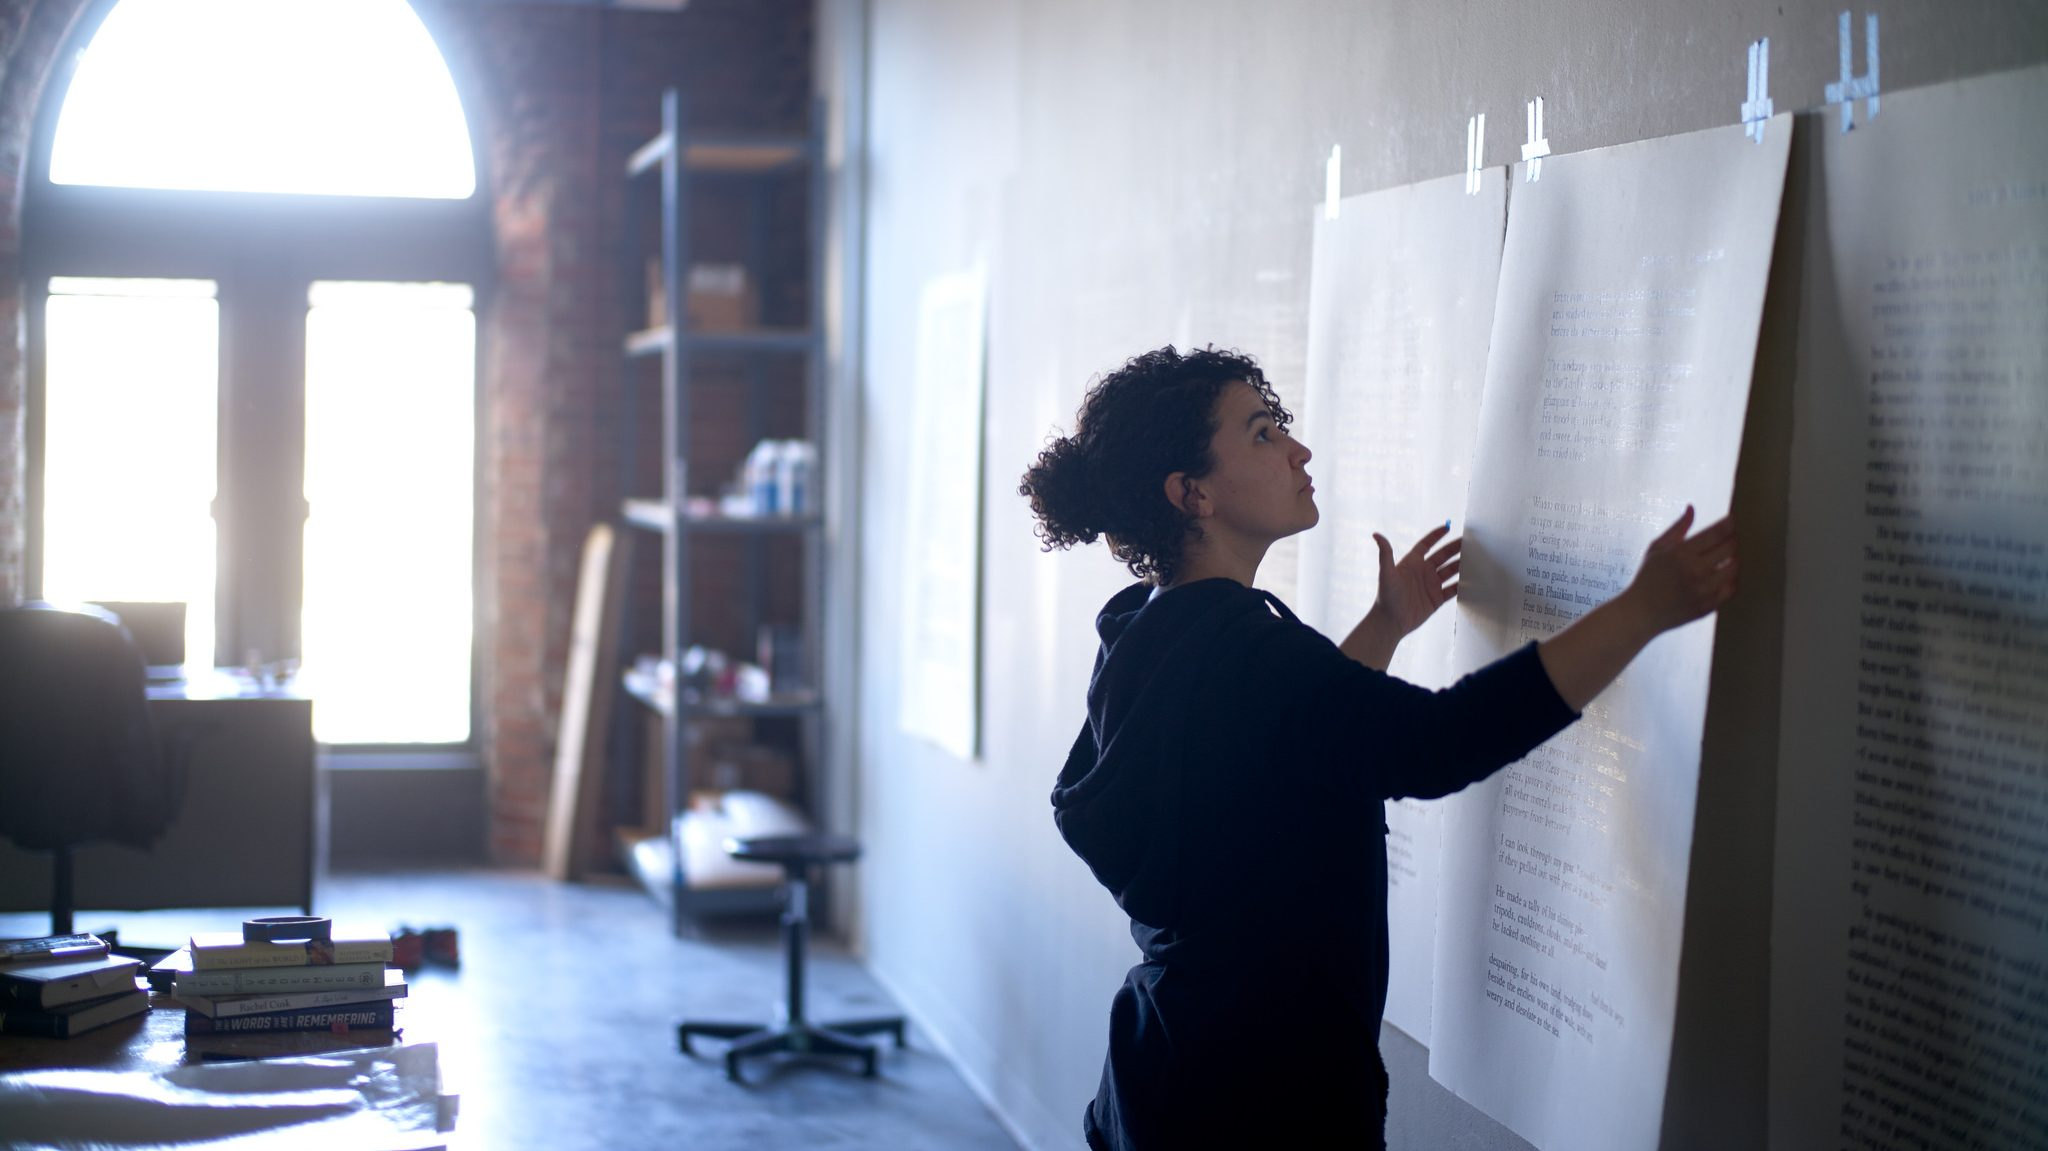 McColl Center for Art + Innovation offers residency. Deadline to apply is May 15.